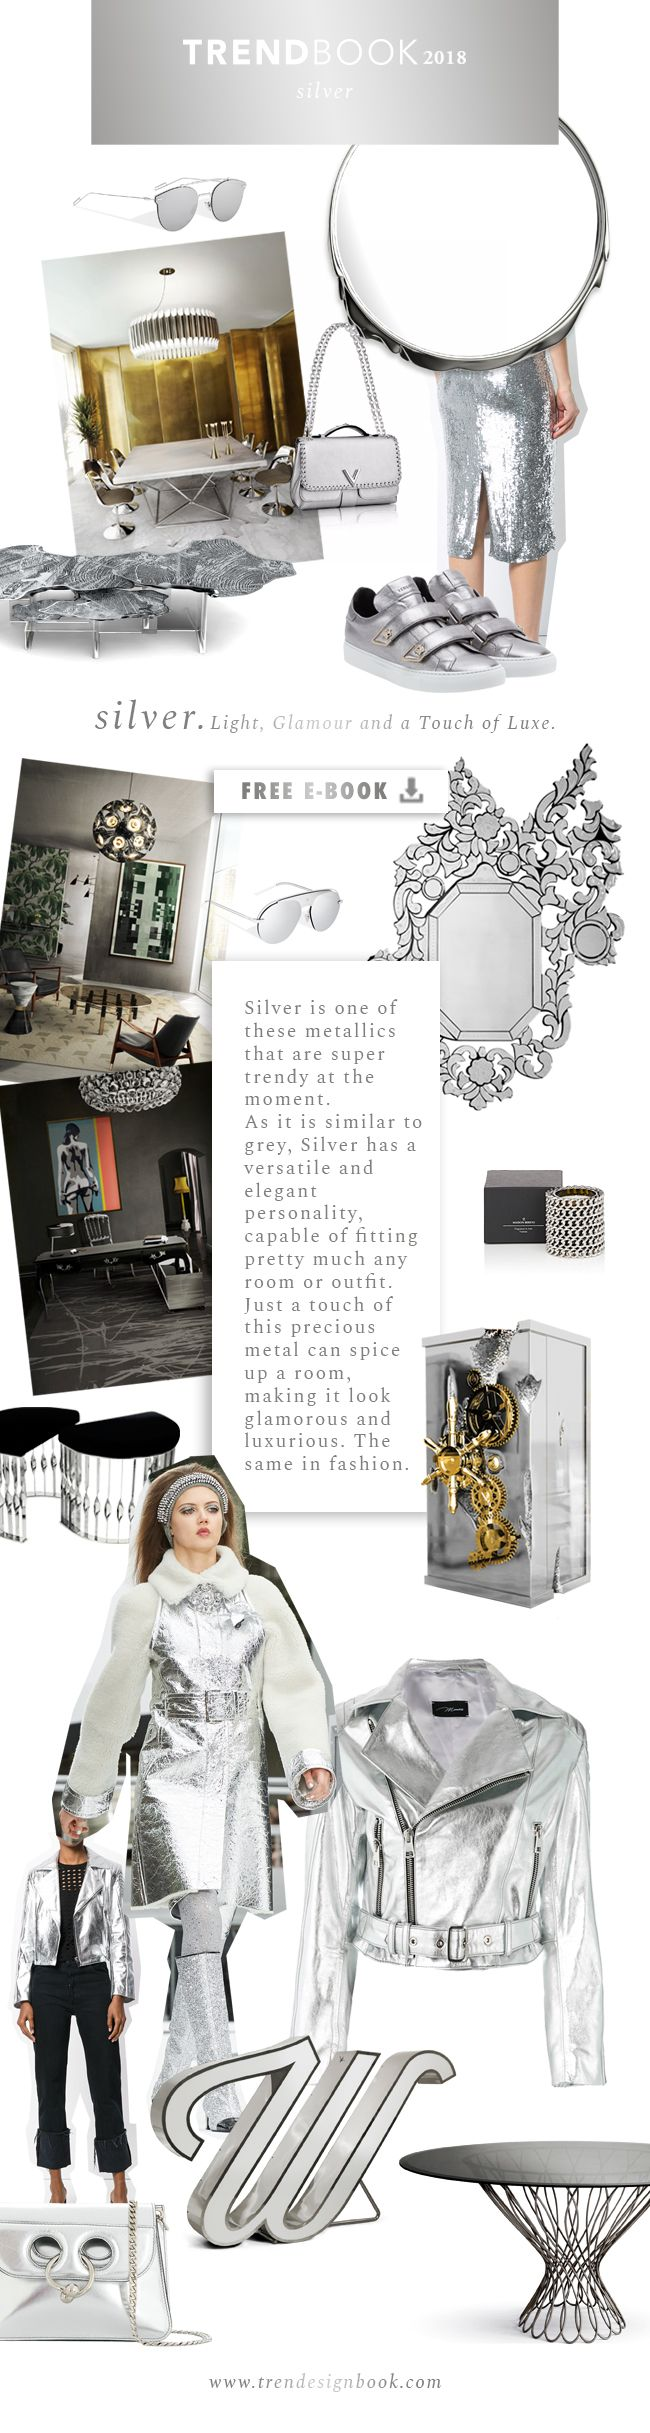 Trends 2018 / 2019 . Material Trends Silver and Metallics . Moodboard